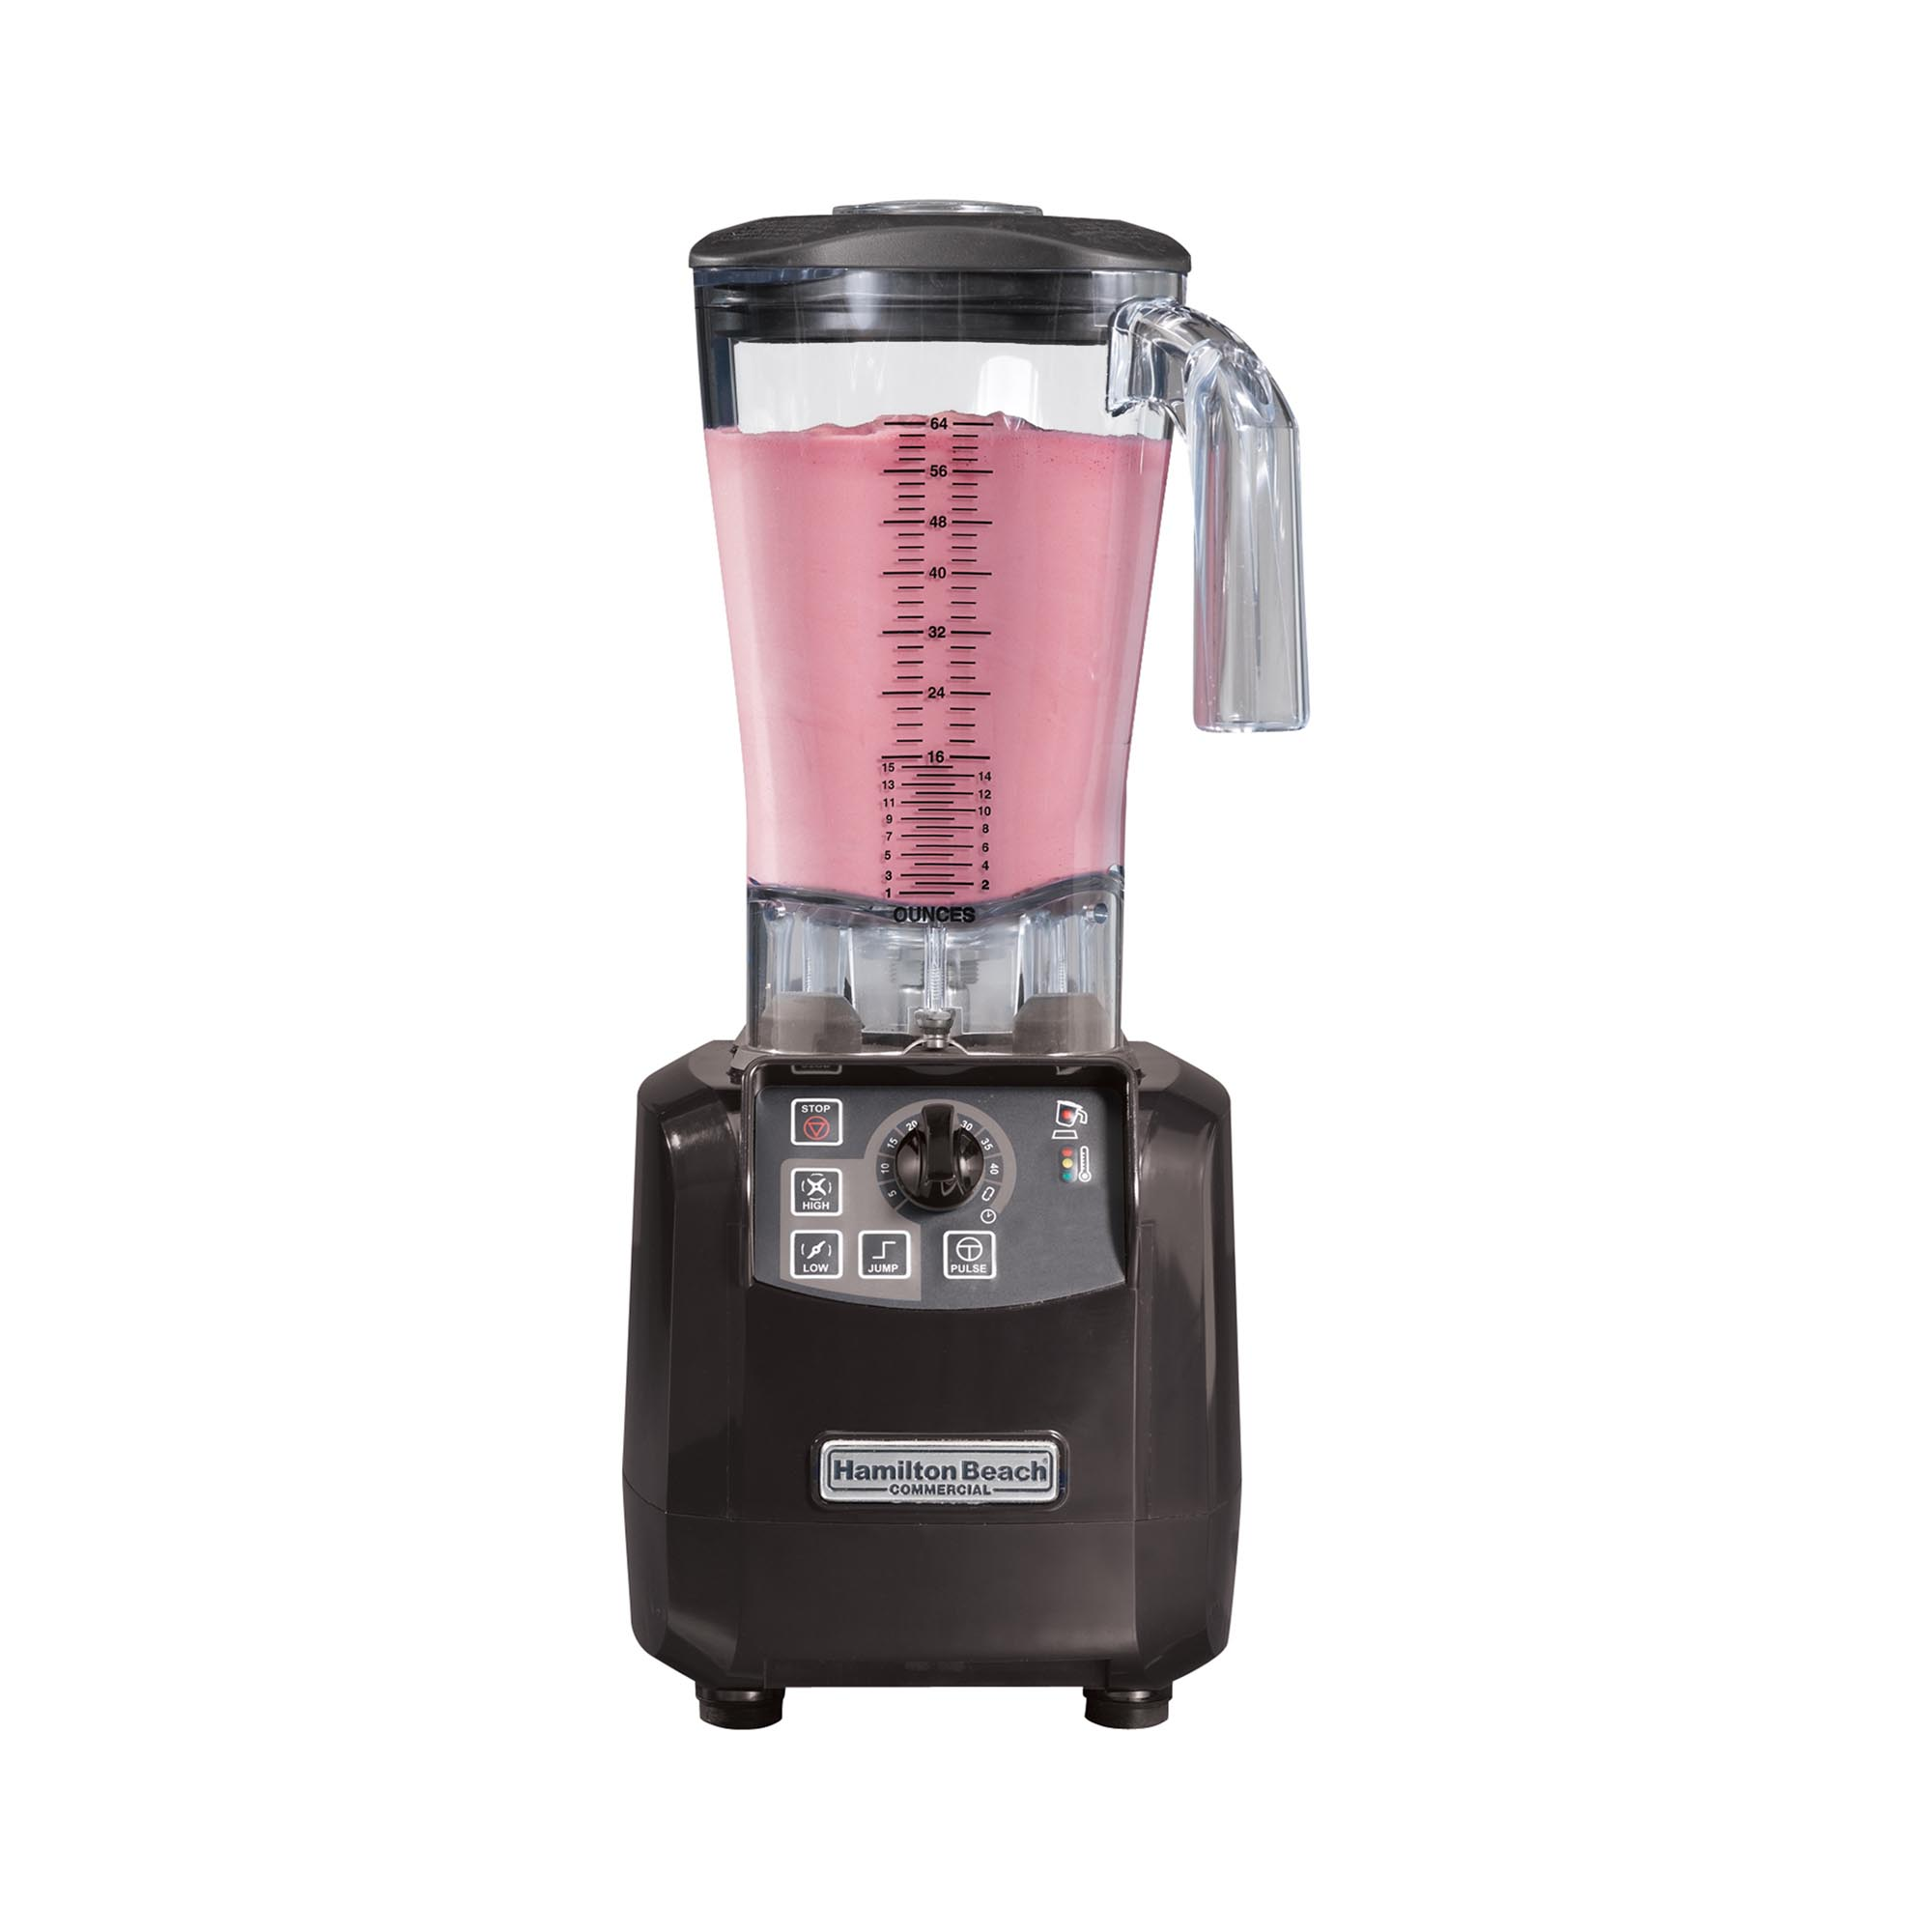 Hamilton Beach® Standmixer - 880 W - 1,8 L - Timer - Puls-Funktion HBH650-CE